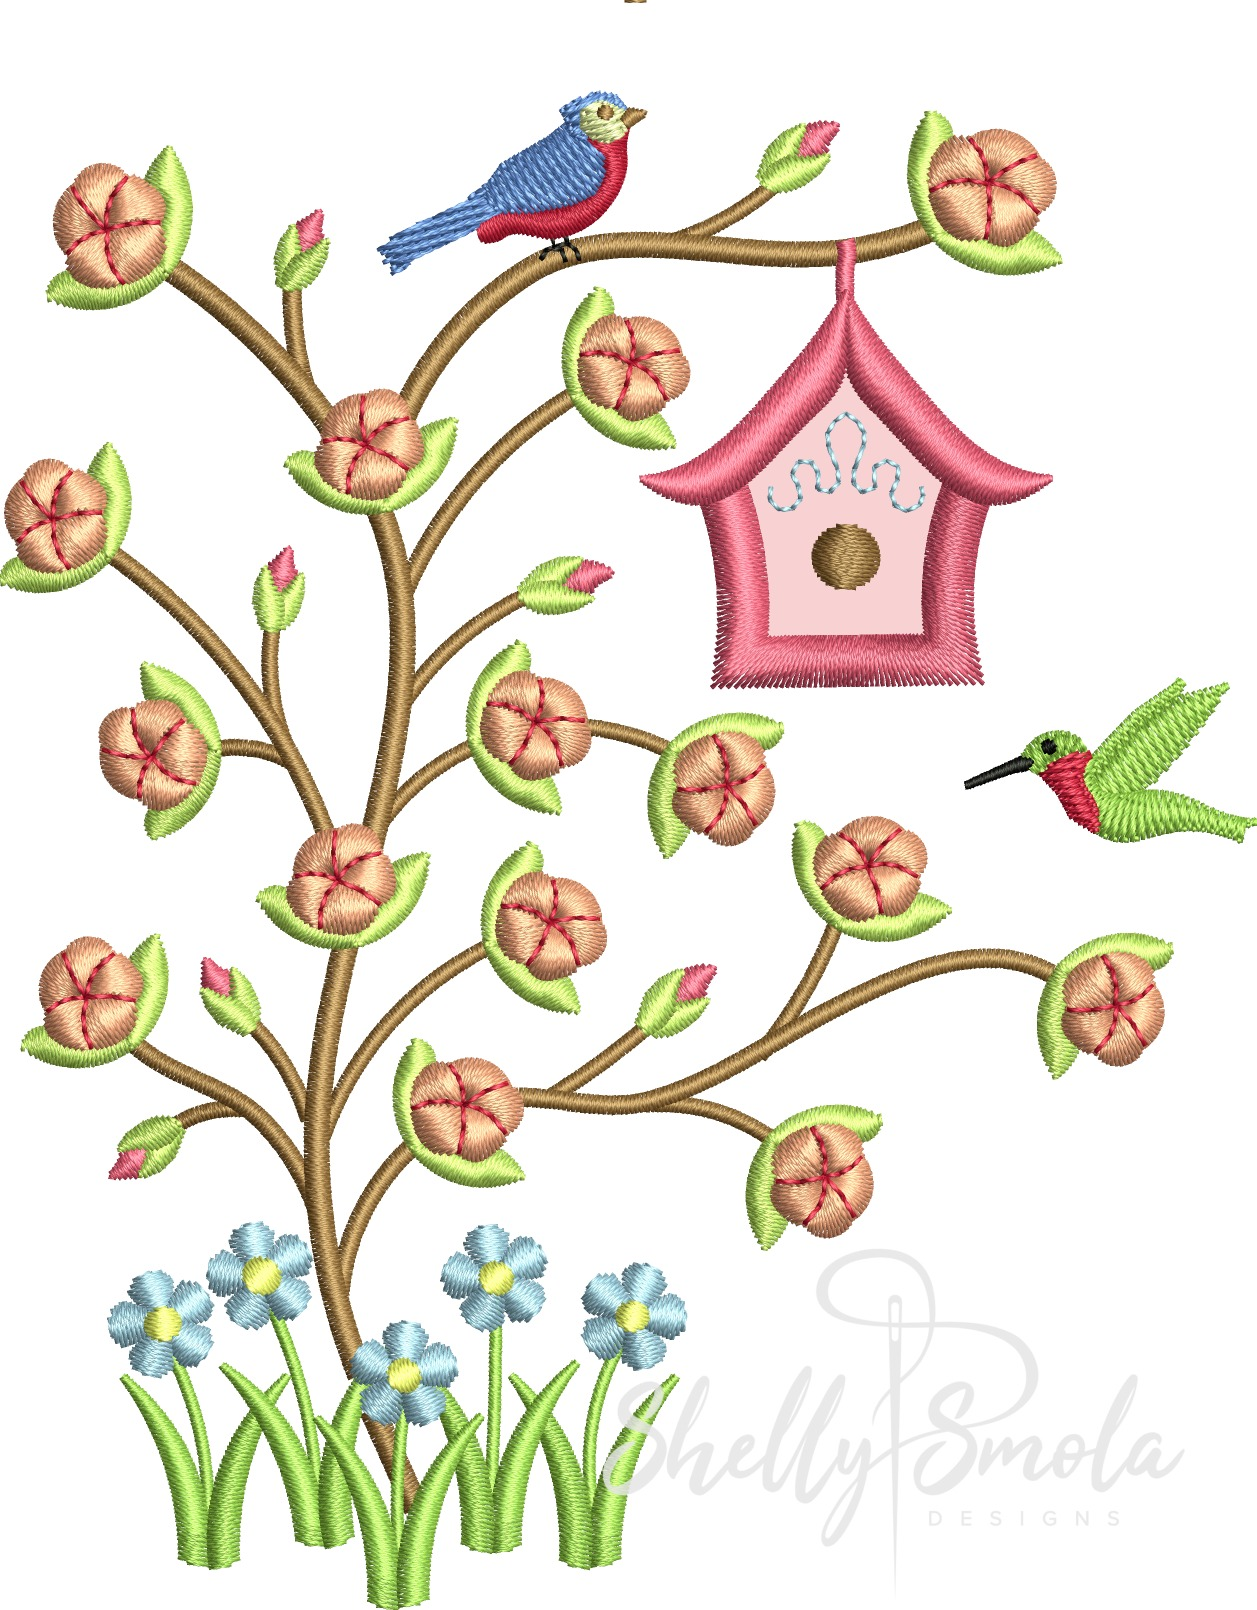 Garden Gadgets Flowering Tree by Shelly Smola